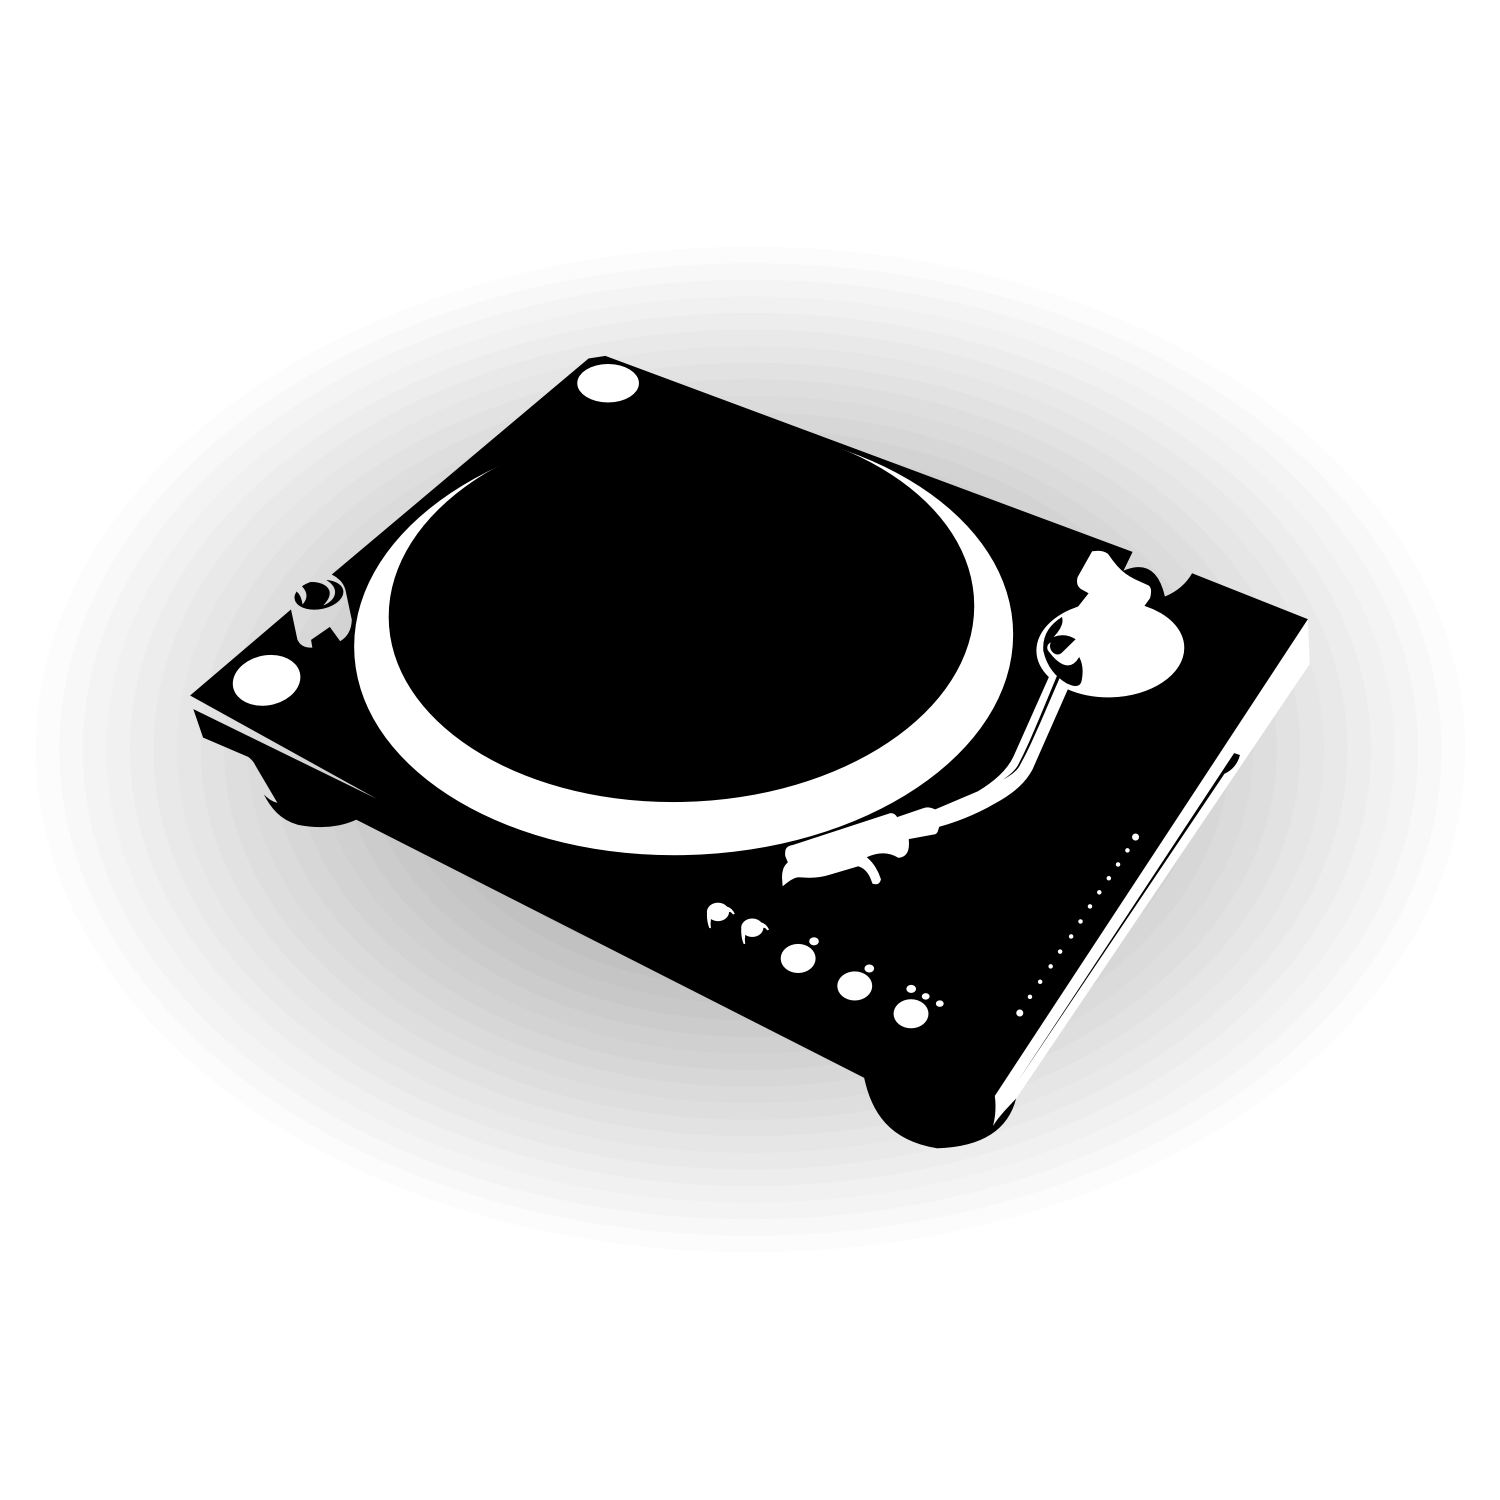 Dj turntable silhouette vector image.